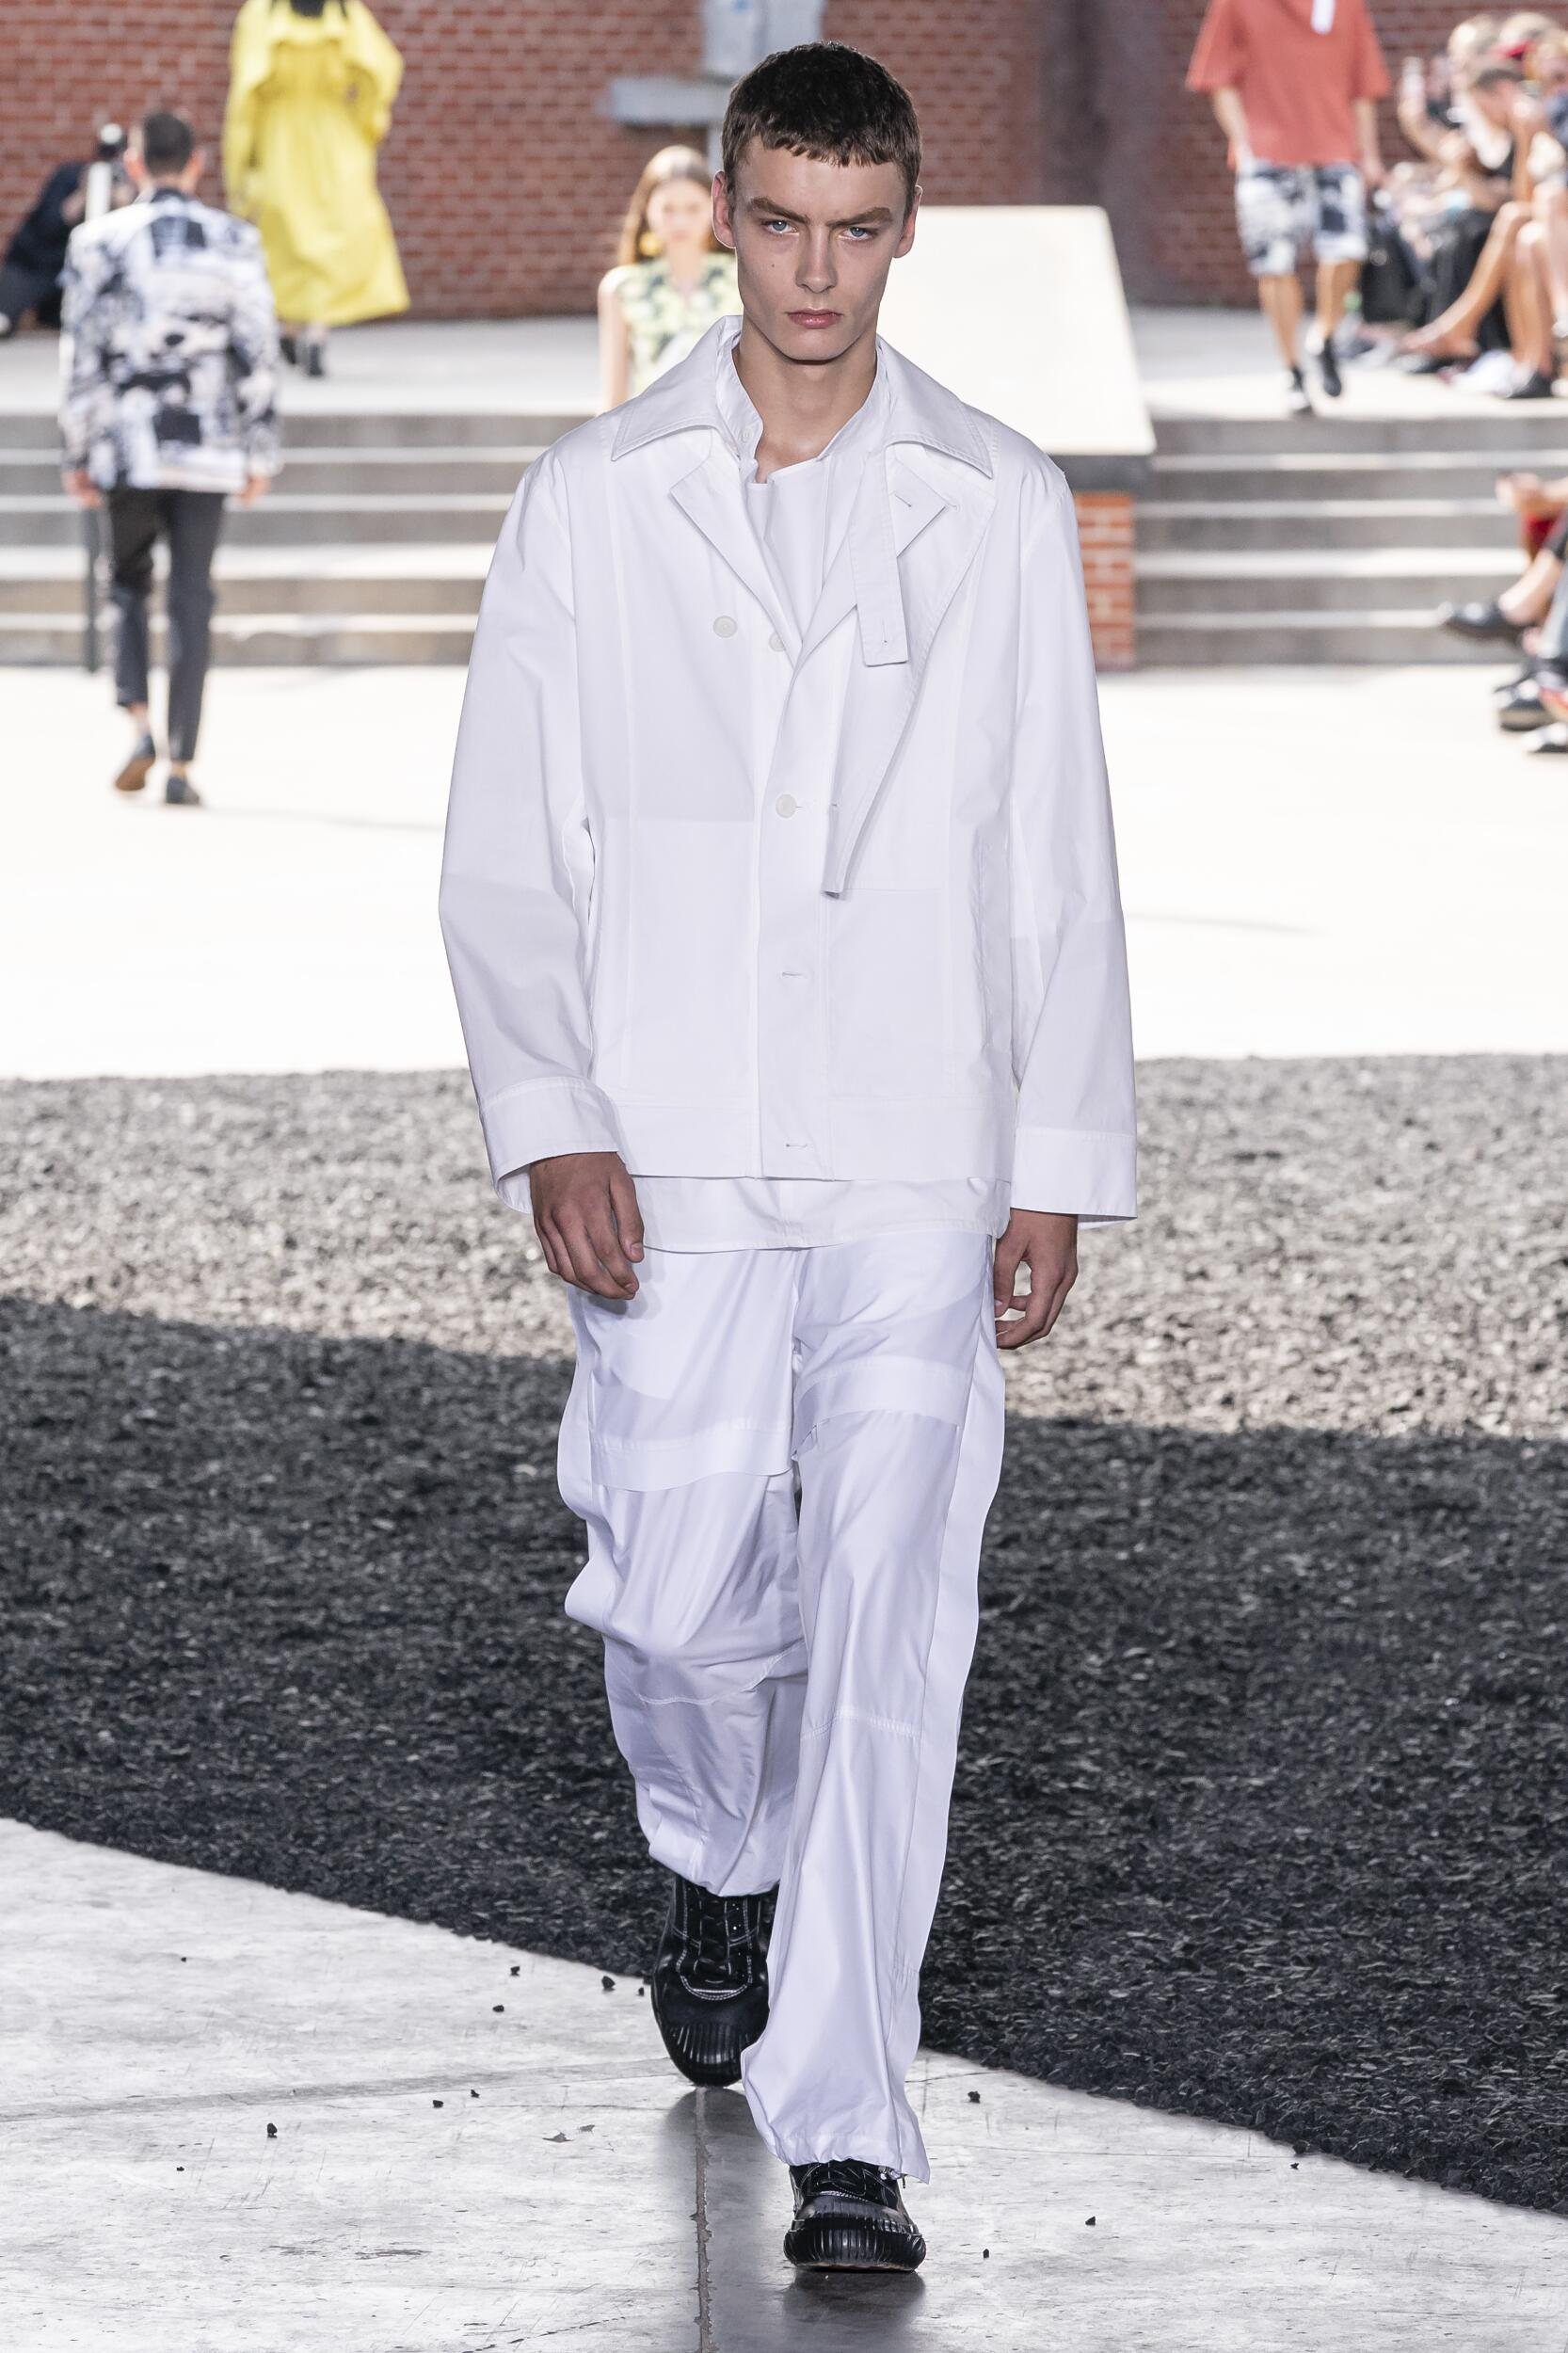 Runway 3.1 Phillip Lim Spring Summer 2020 Men's Collection New York Fashion Week